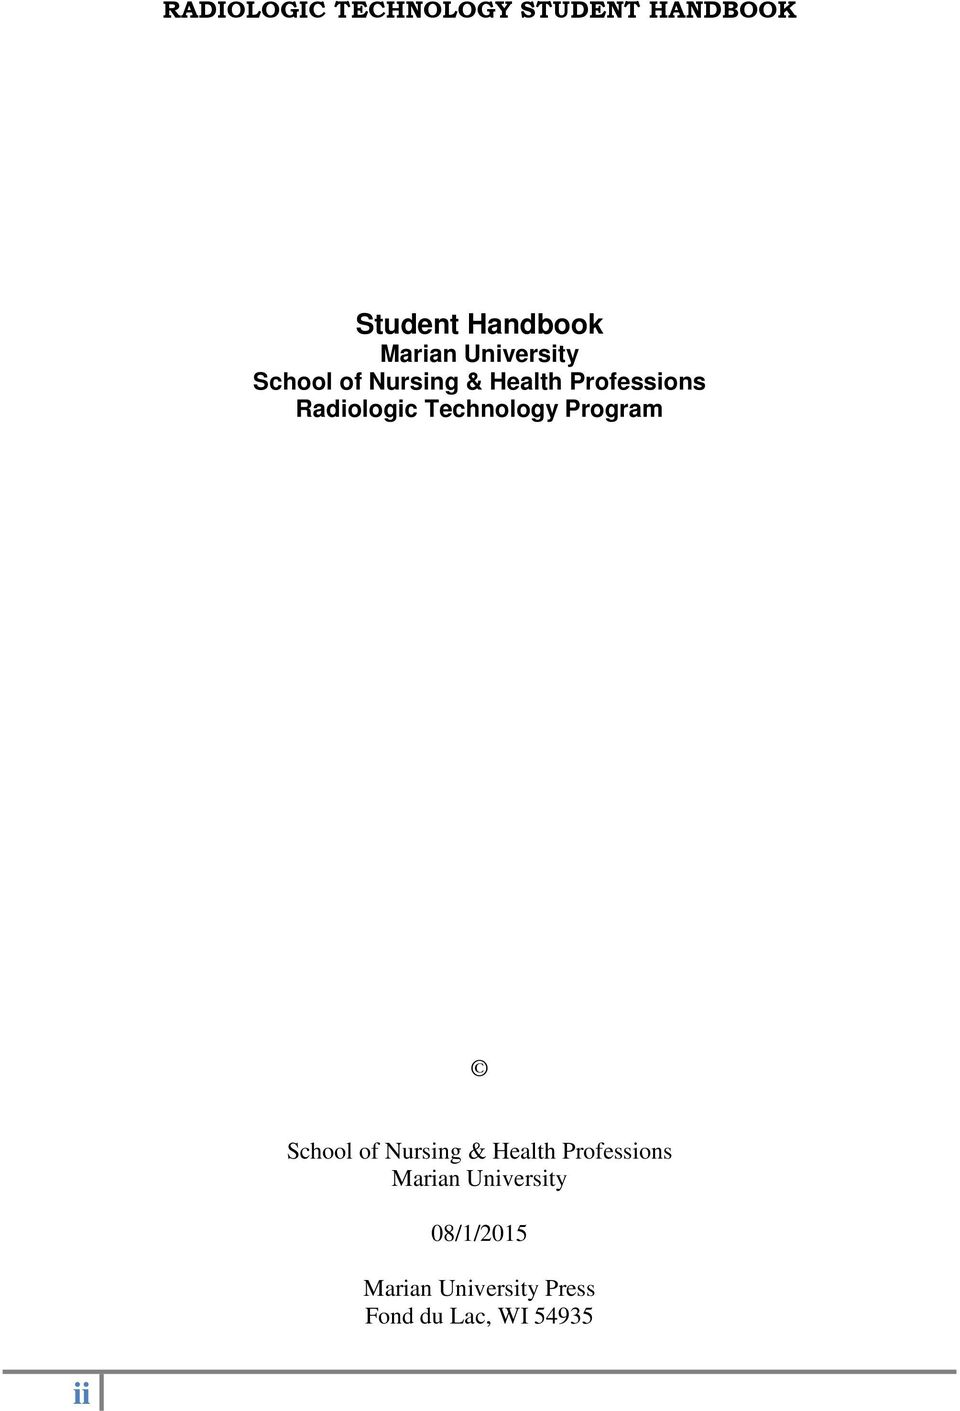 School of Nursing & Health Professions Marian